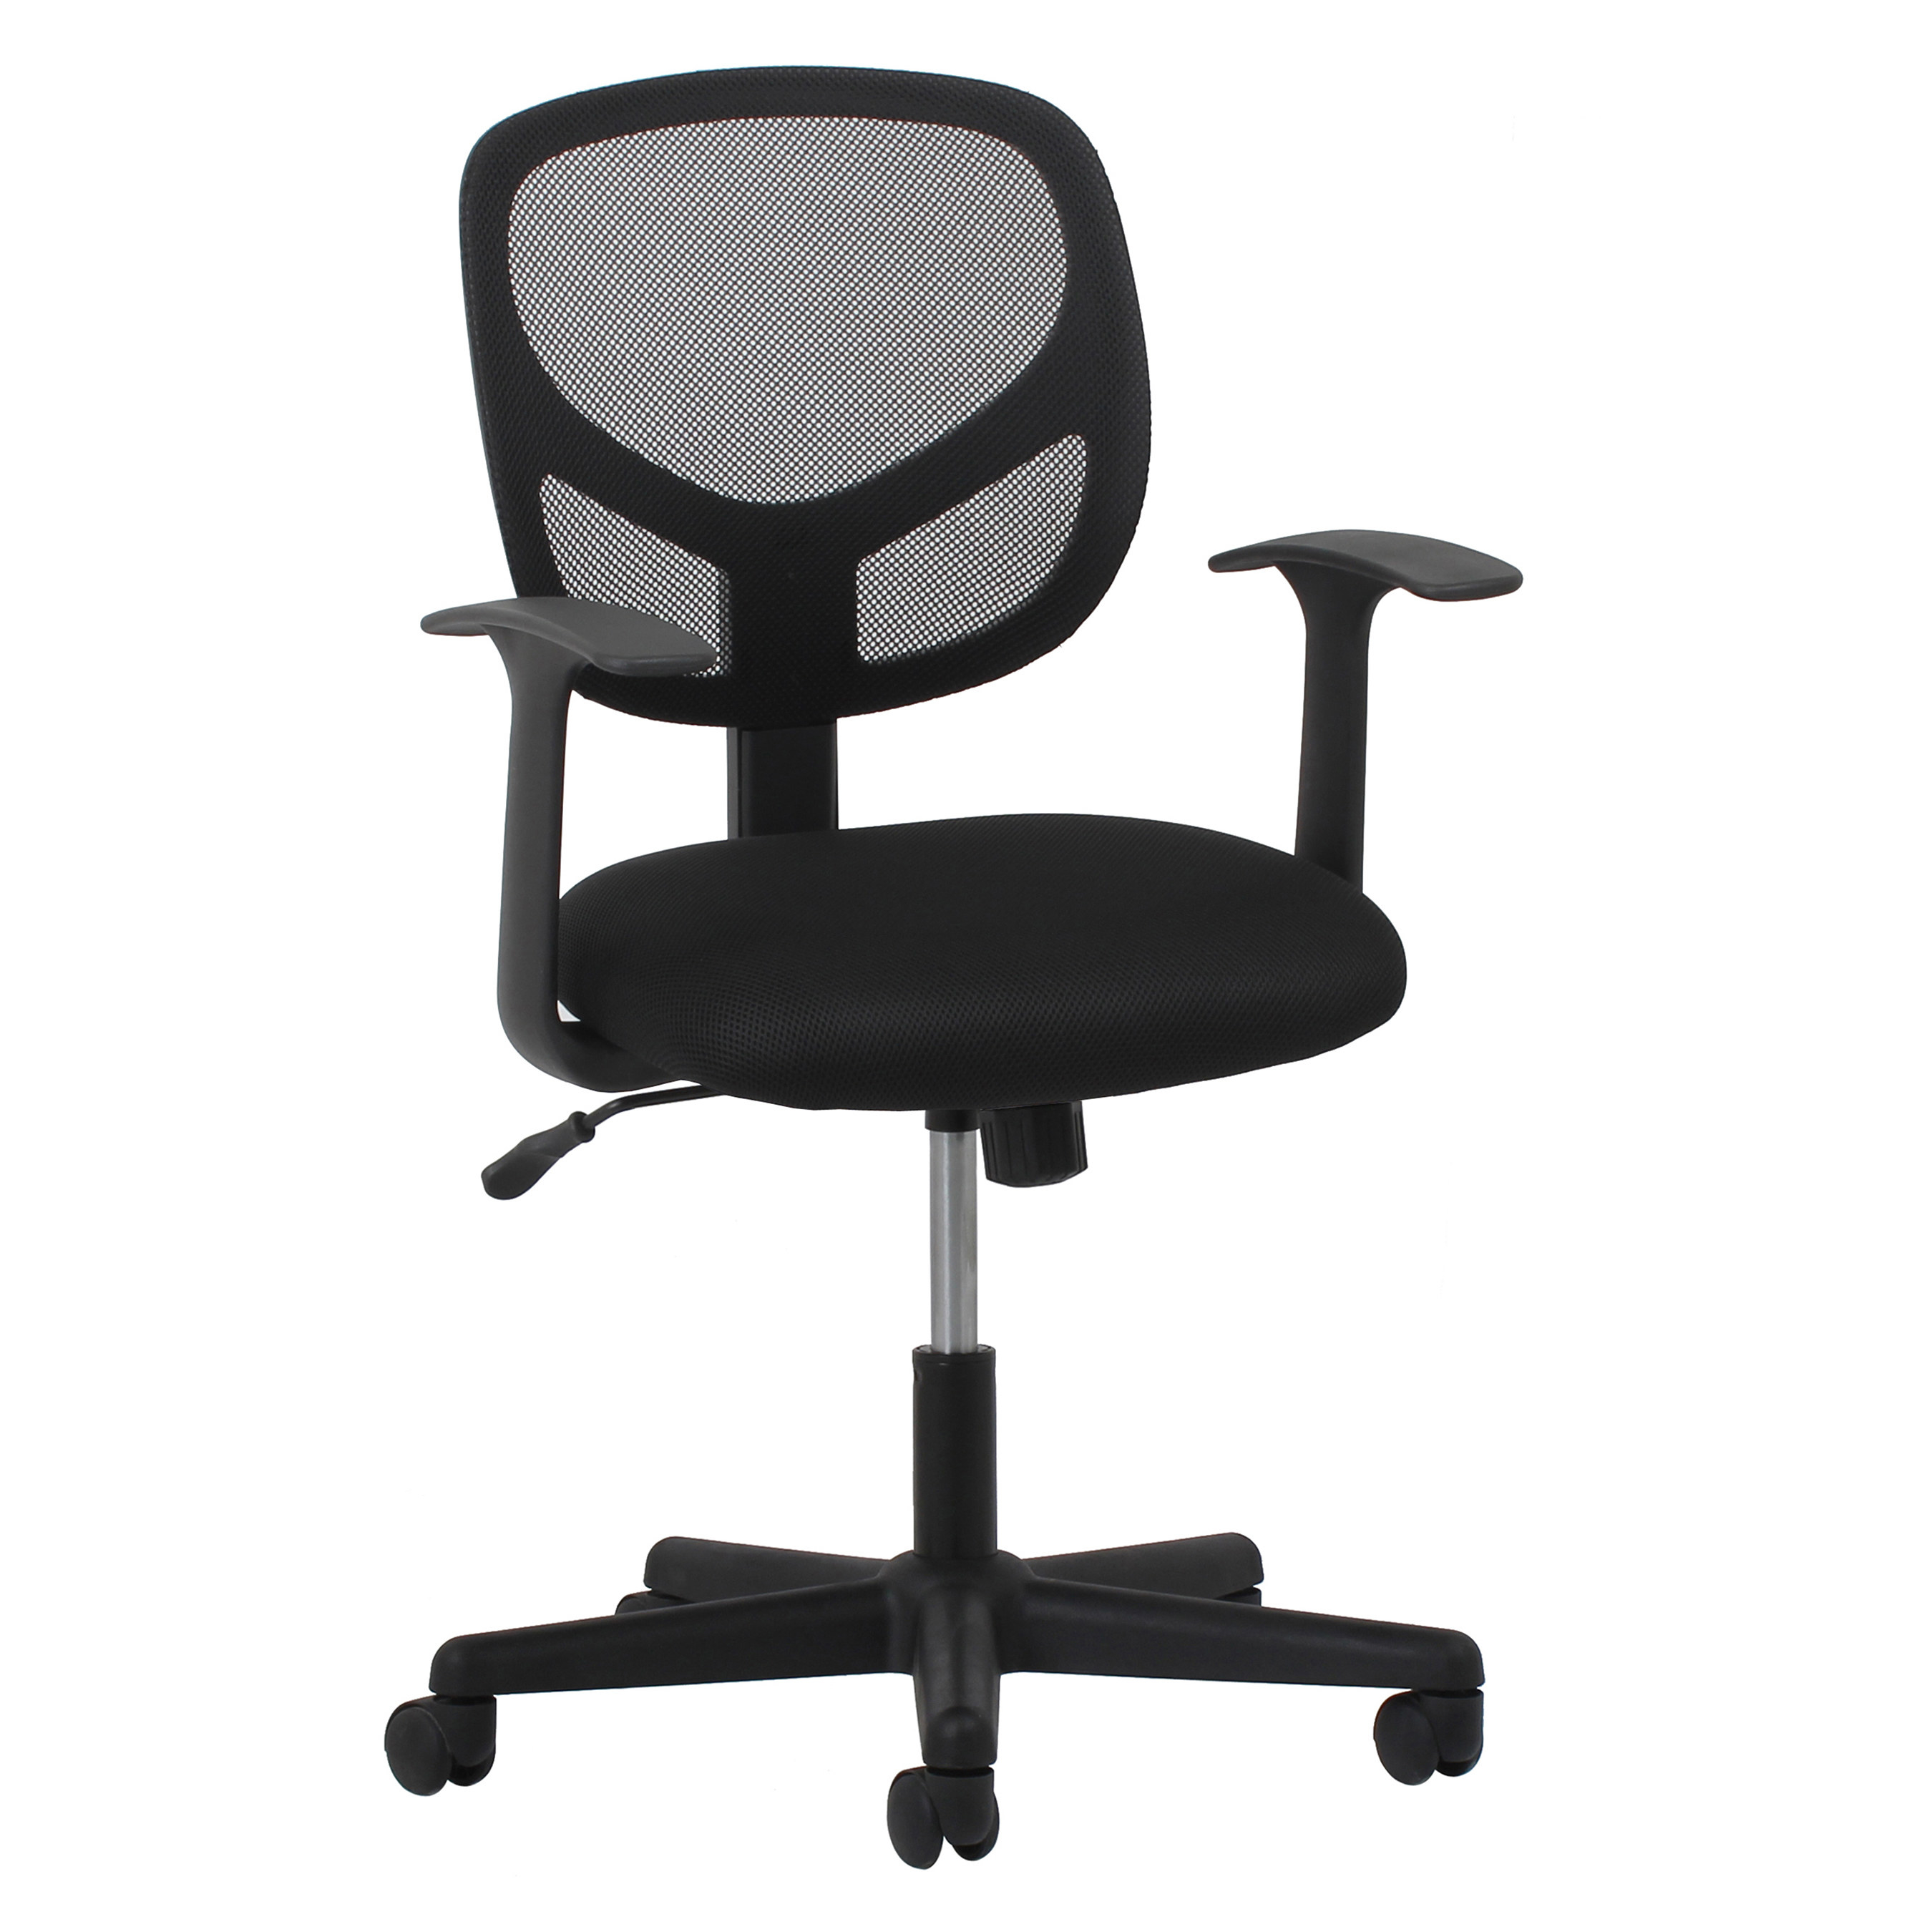 Black mesh back office chair with wheels